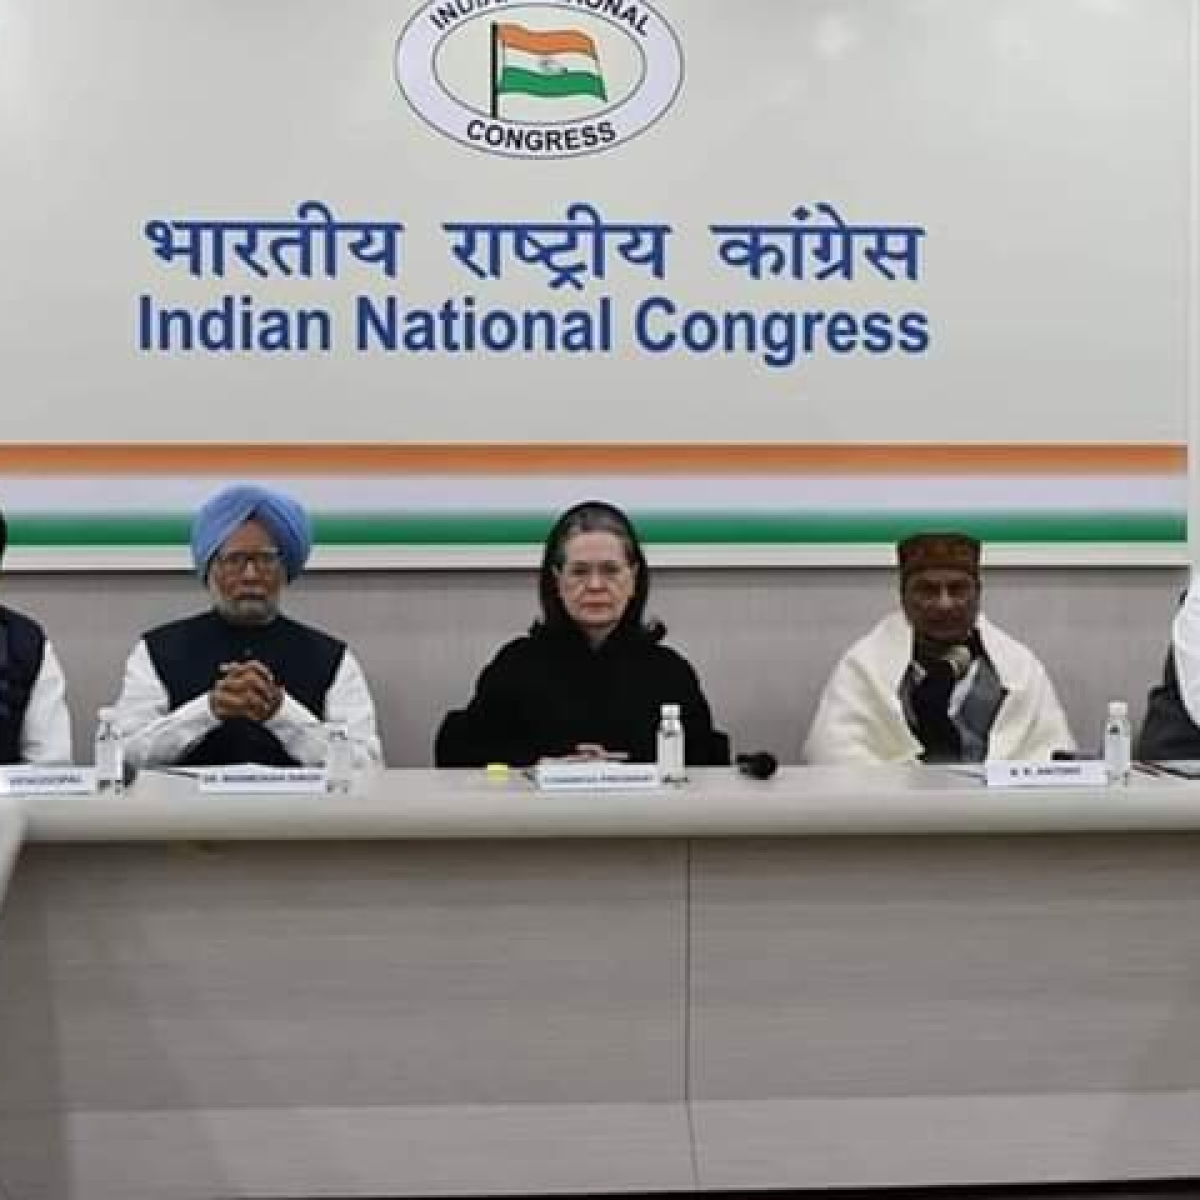 NPR is a disguised NRC, says Sonia Gandhi